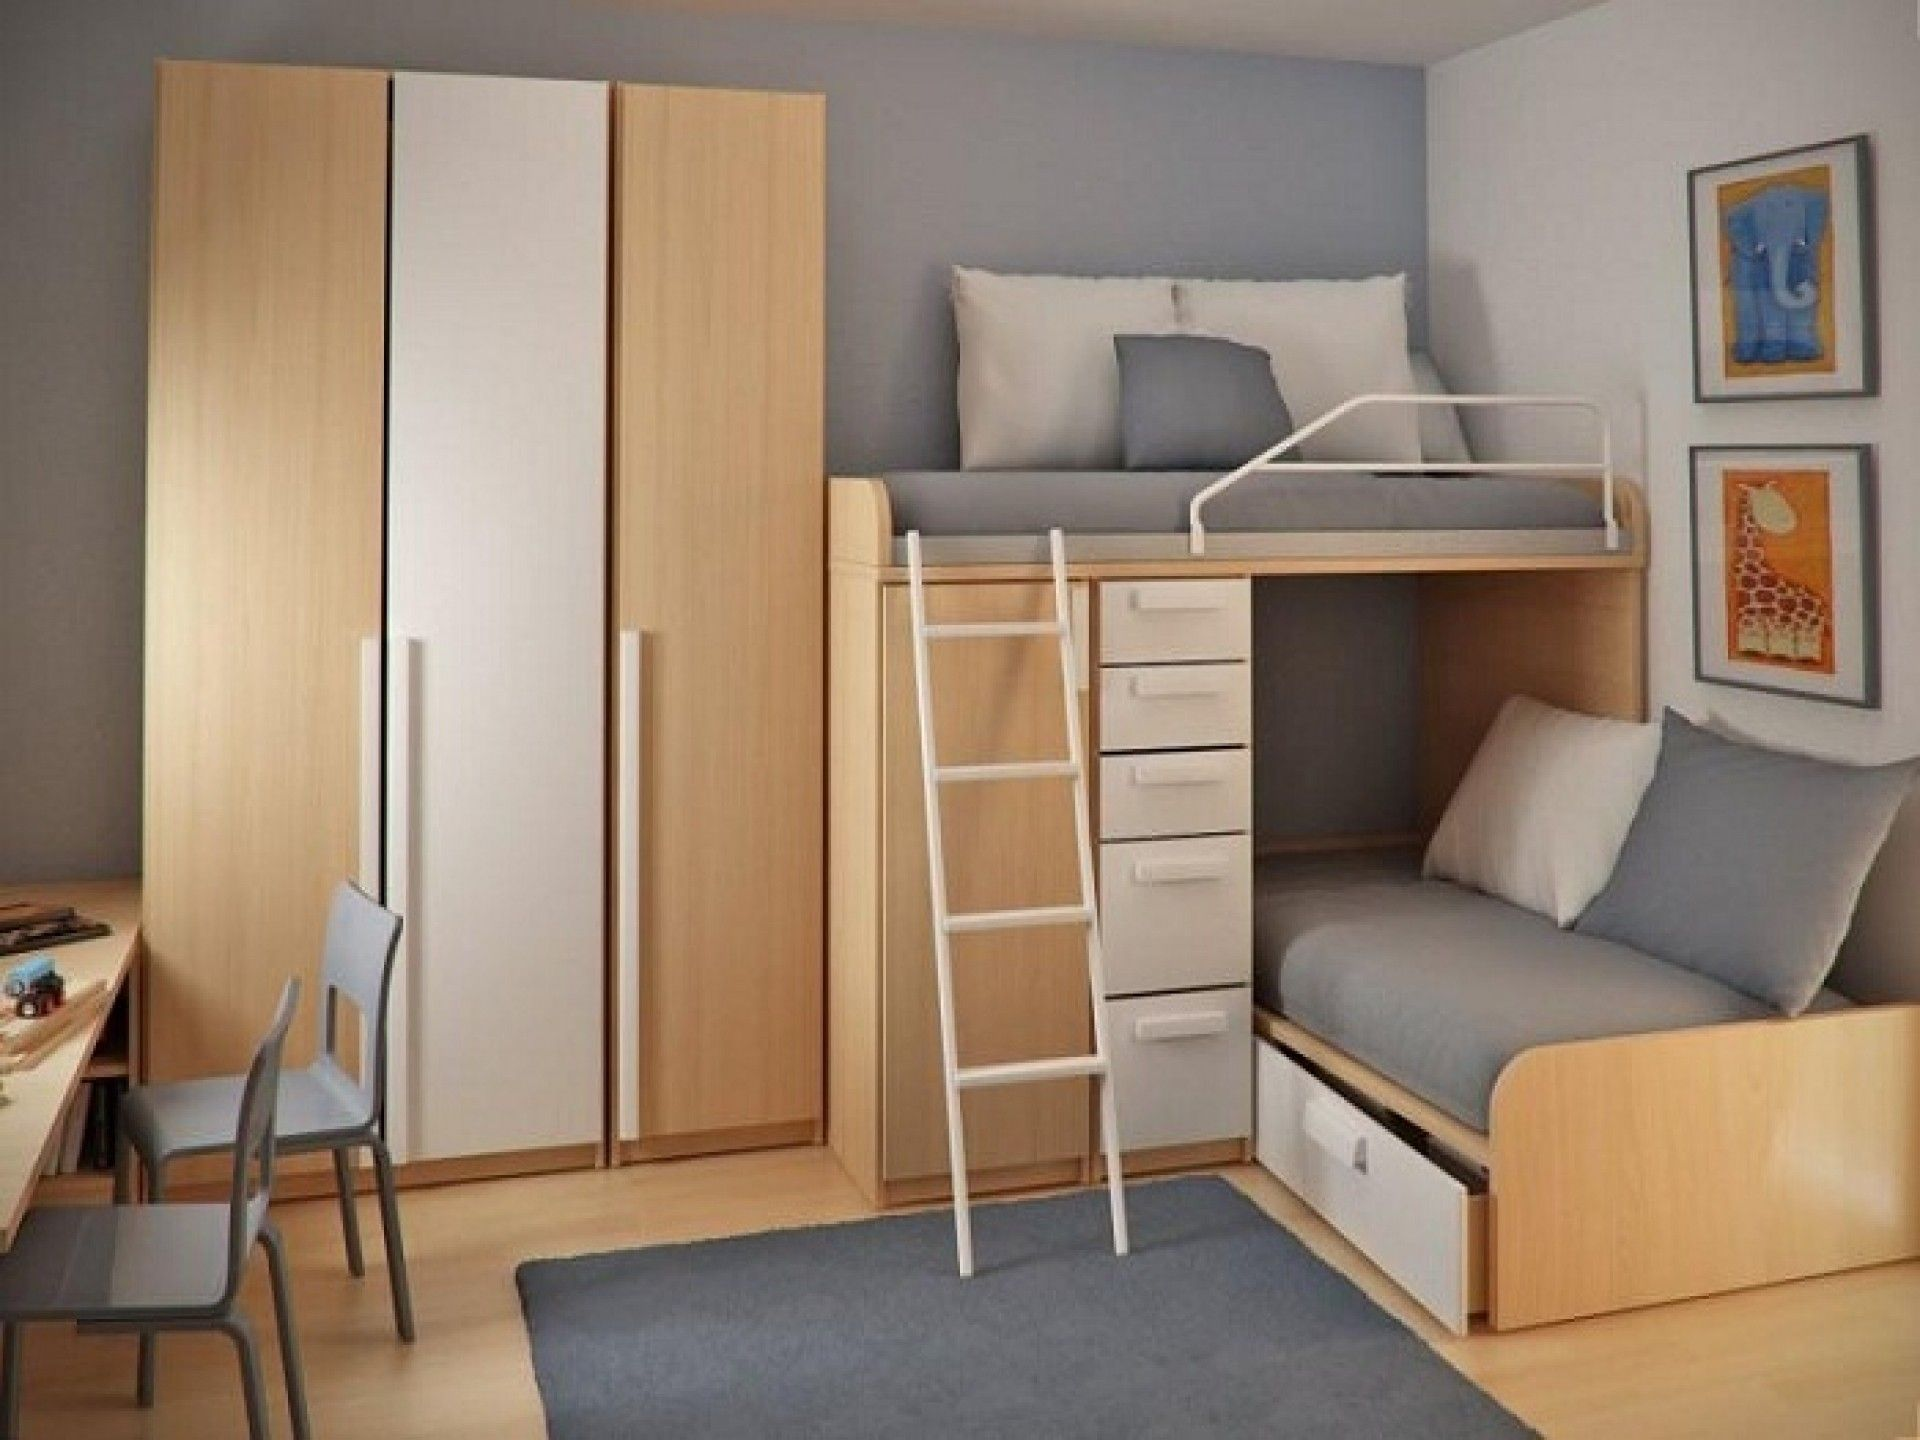 Bedroom 2017 Furniture Two Tones Kids Wardrobe Drawers In Small